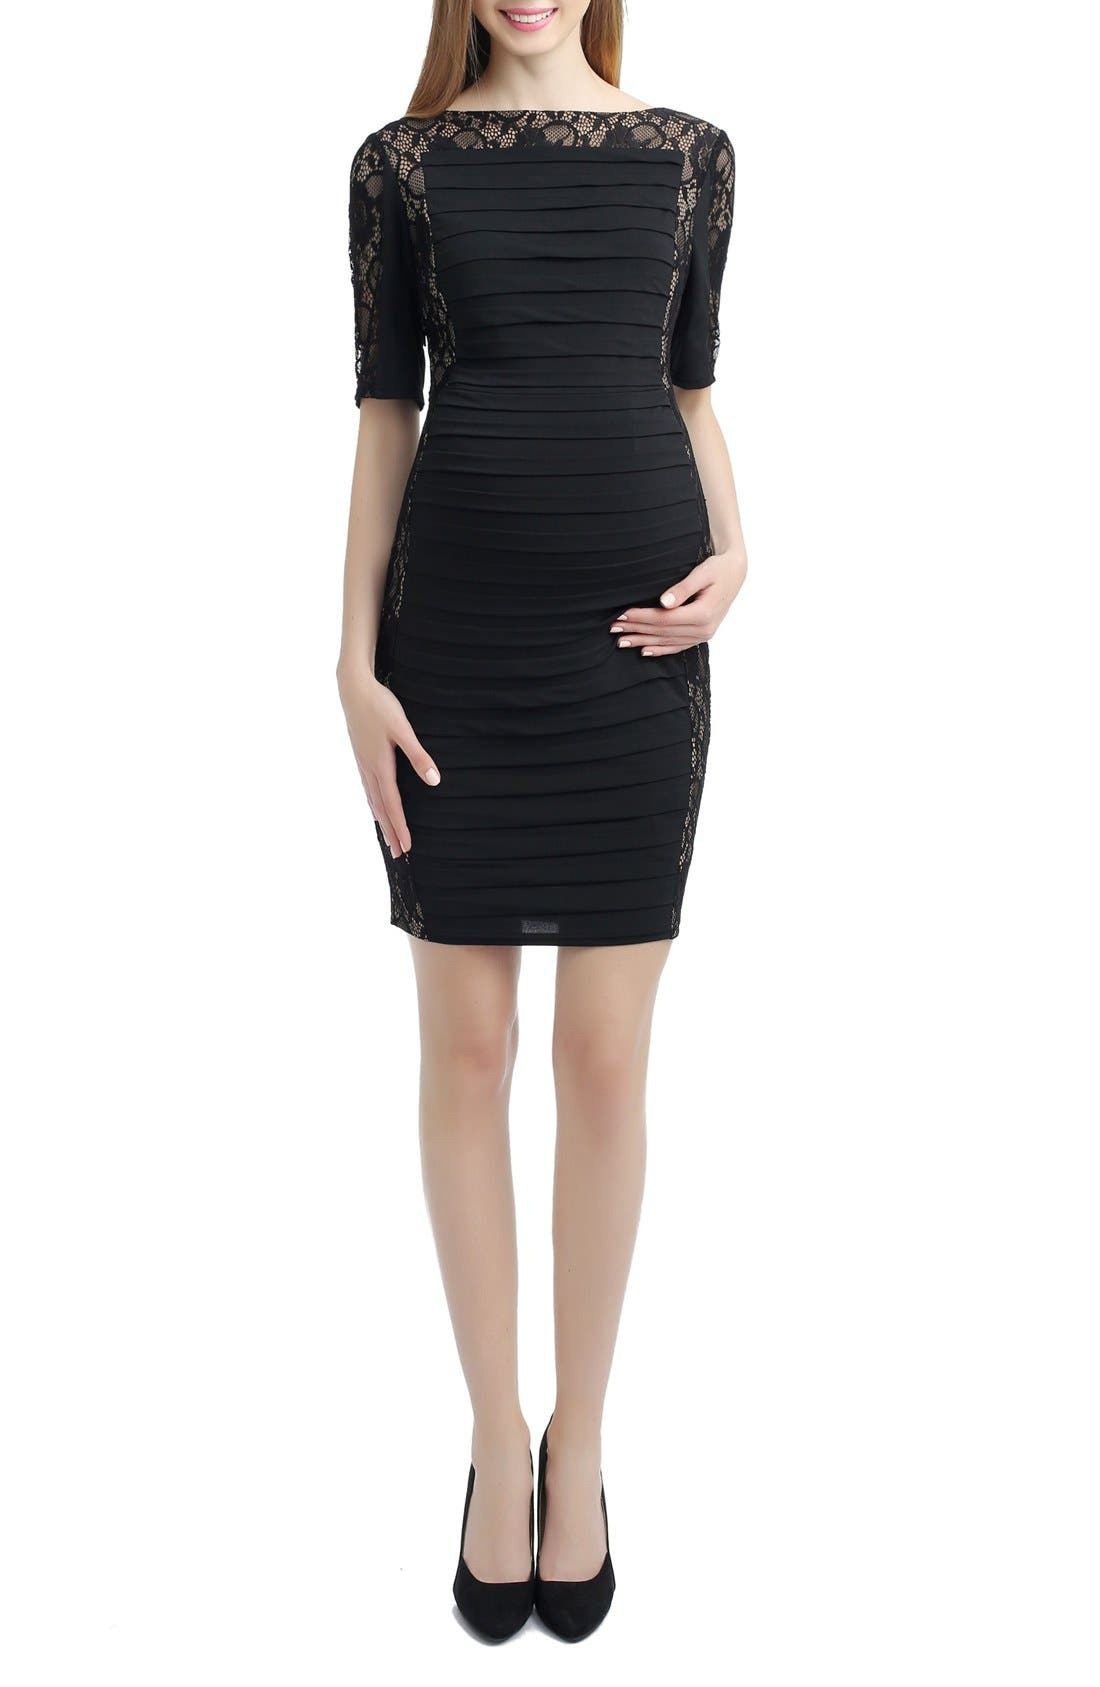 Estelle Lace Maternity Dress,                         Main,                         color, Black